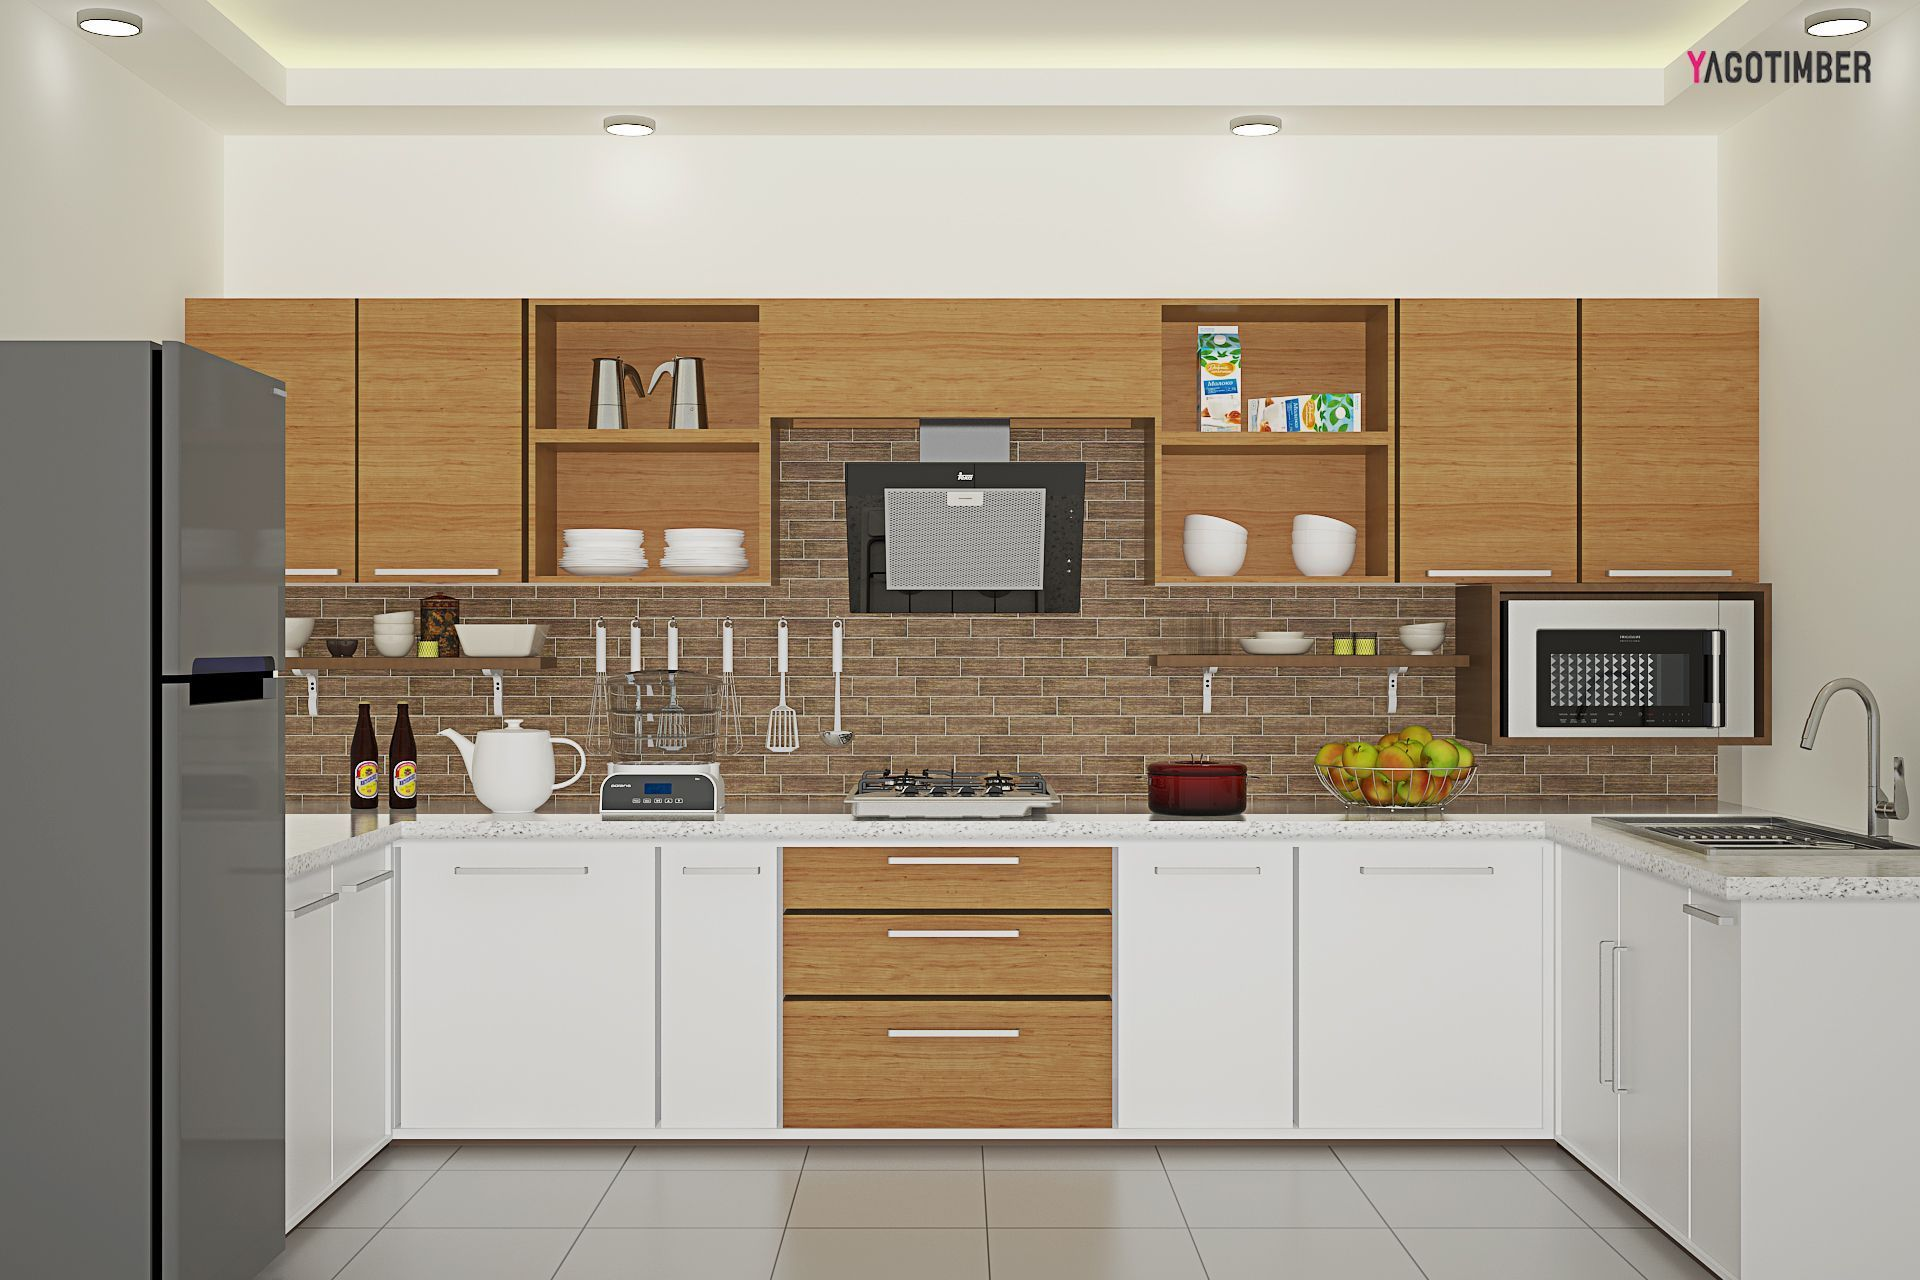 19 Fascinating Simple Kitchen Remodel Ideas Kitchen Remodel Small Kitchen Remodel Kitchen Room Design